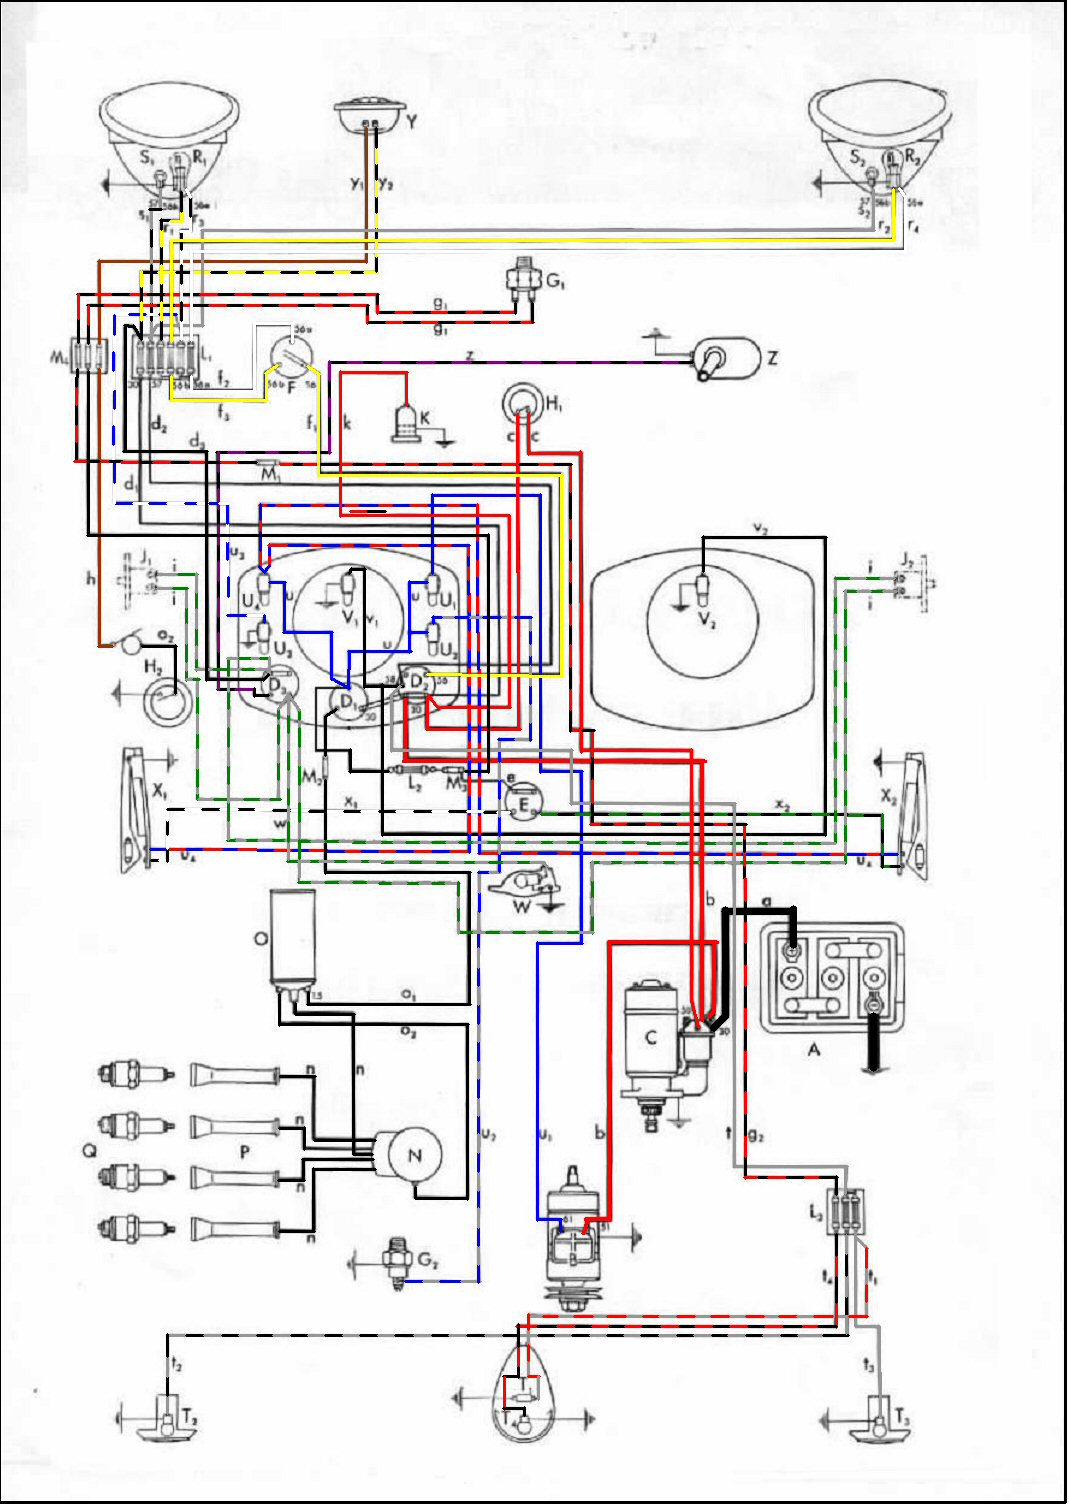 hills home hub wiring diagram wiring libraryhills home hub wiring diagram